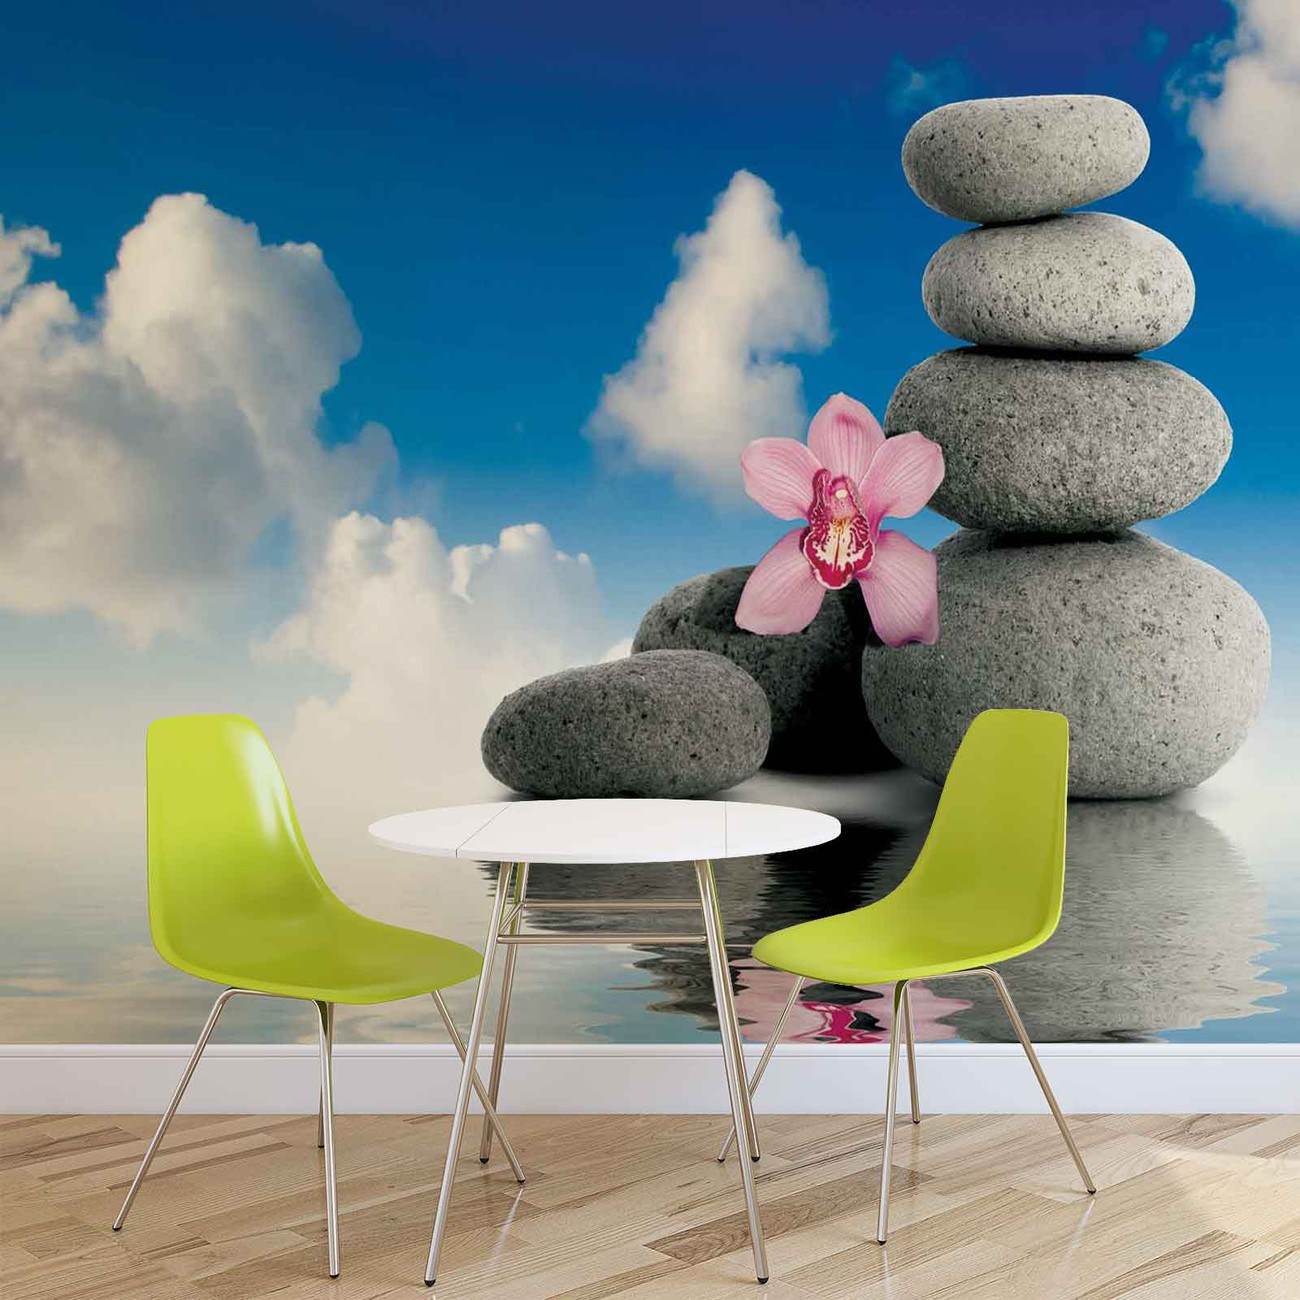 Zen spa serenity wall paper mural buy at europosters for Poster mural geant zen